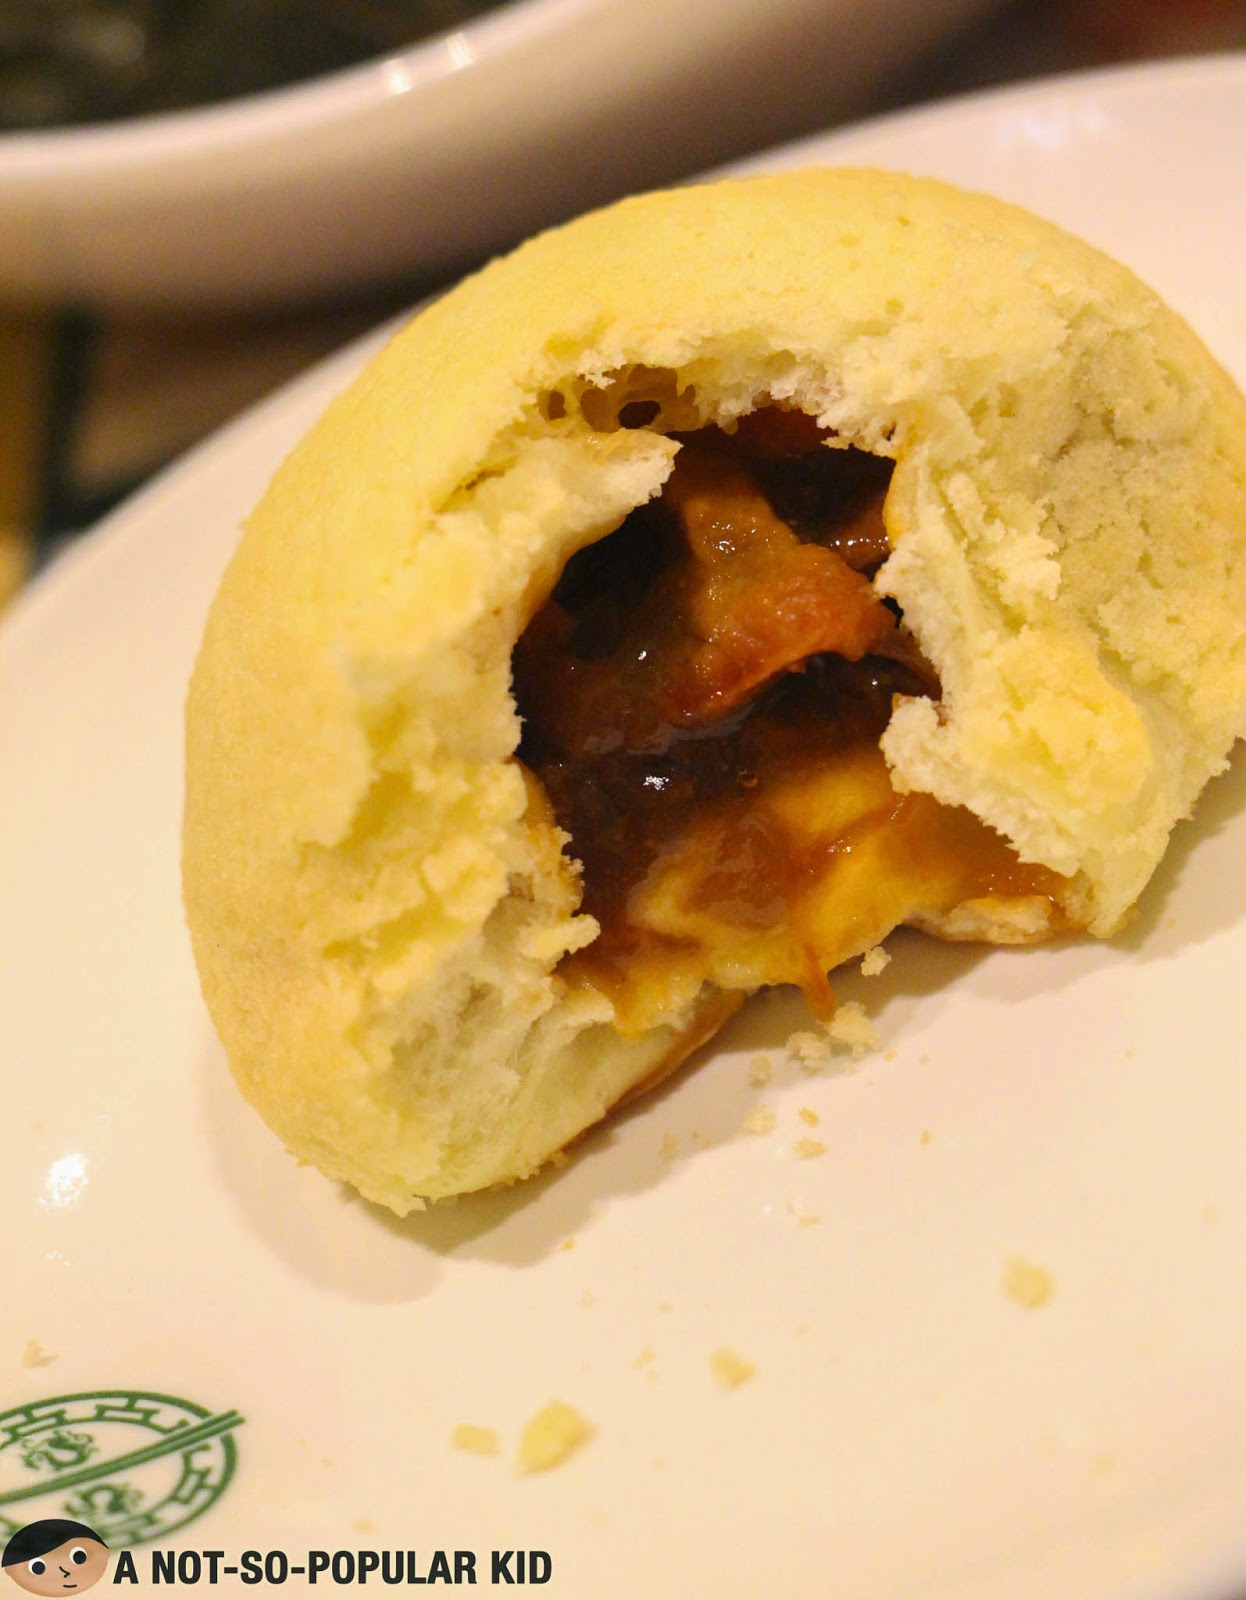 A closer look of the famous Baked Buns with Pork BBQ of Tim Ho Wan